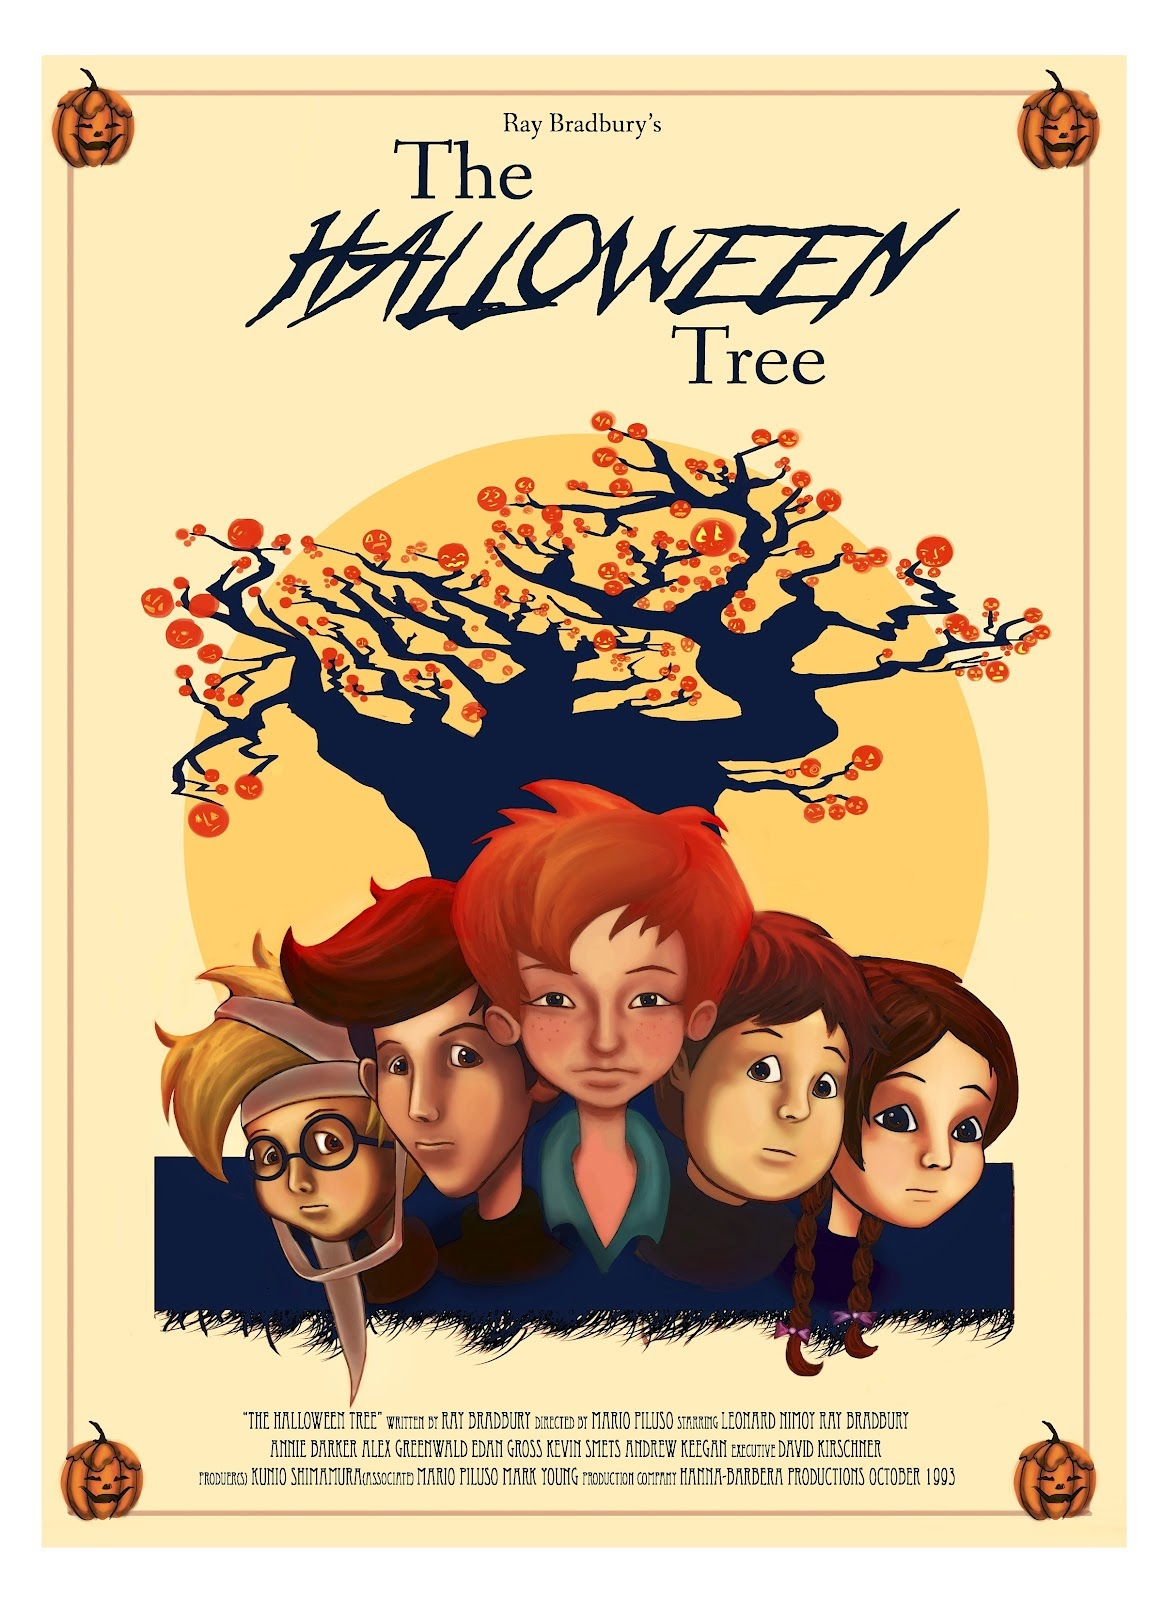 Film Trailers World Custom E Money Flazz Dan Brizzi Card Design Thor 1 The Halloween Tree